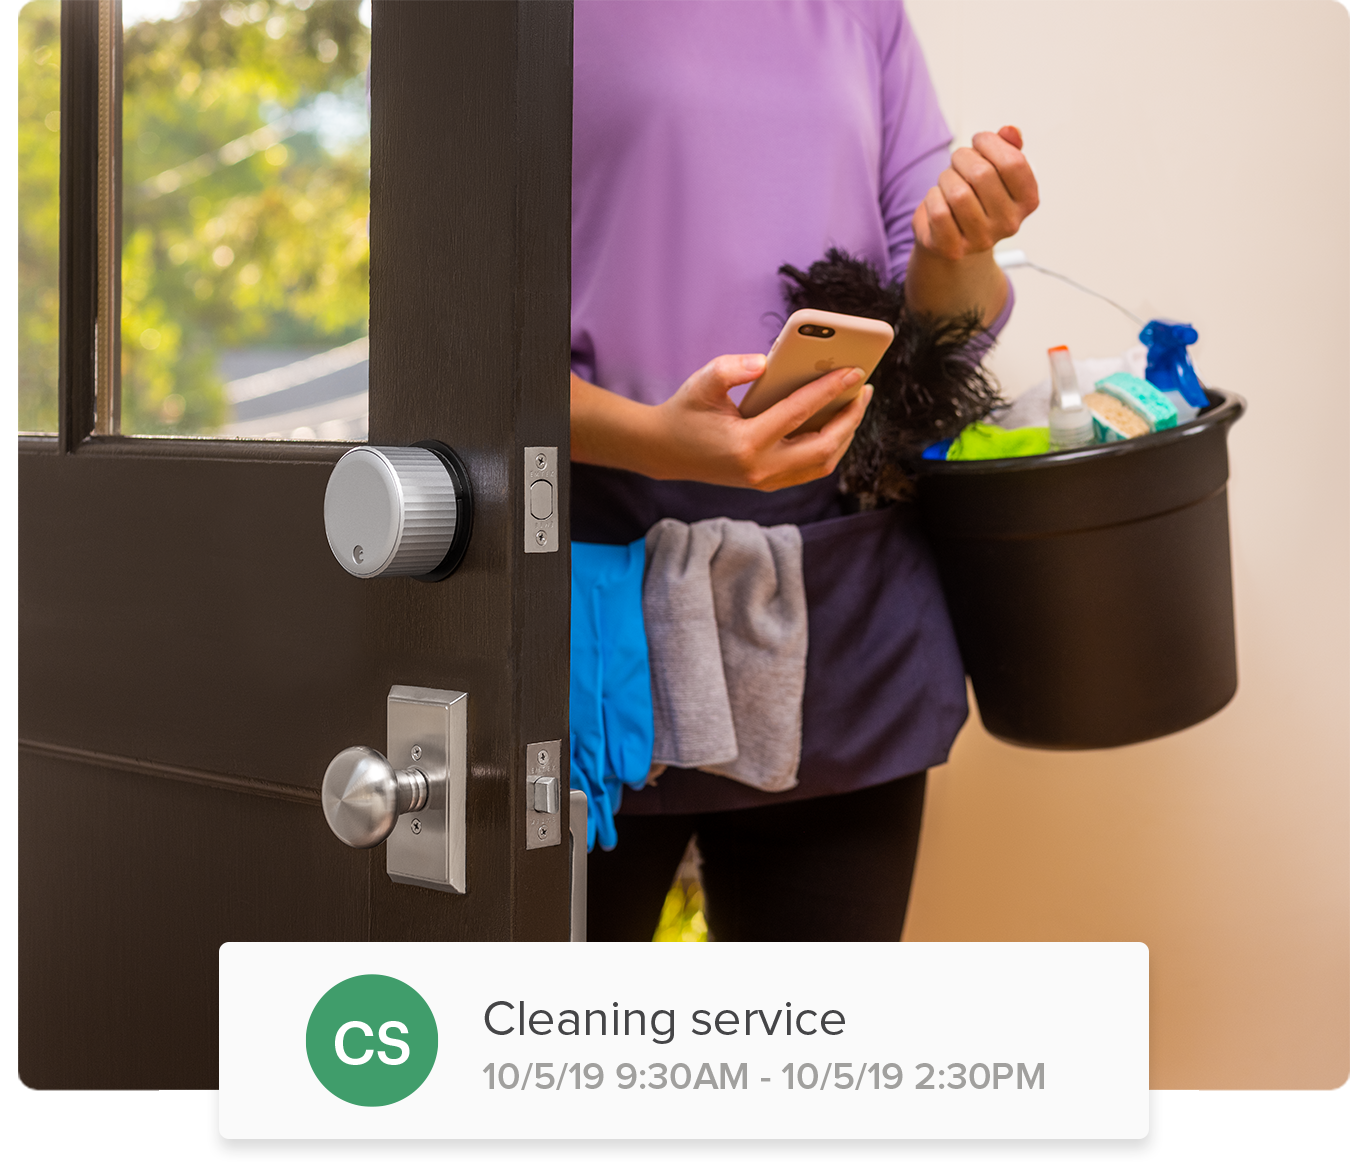 Person Checking App On Phone While Cleaning